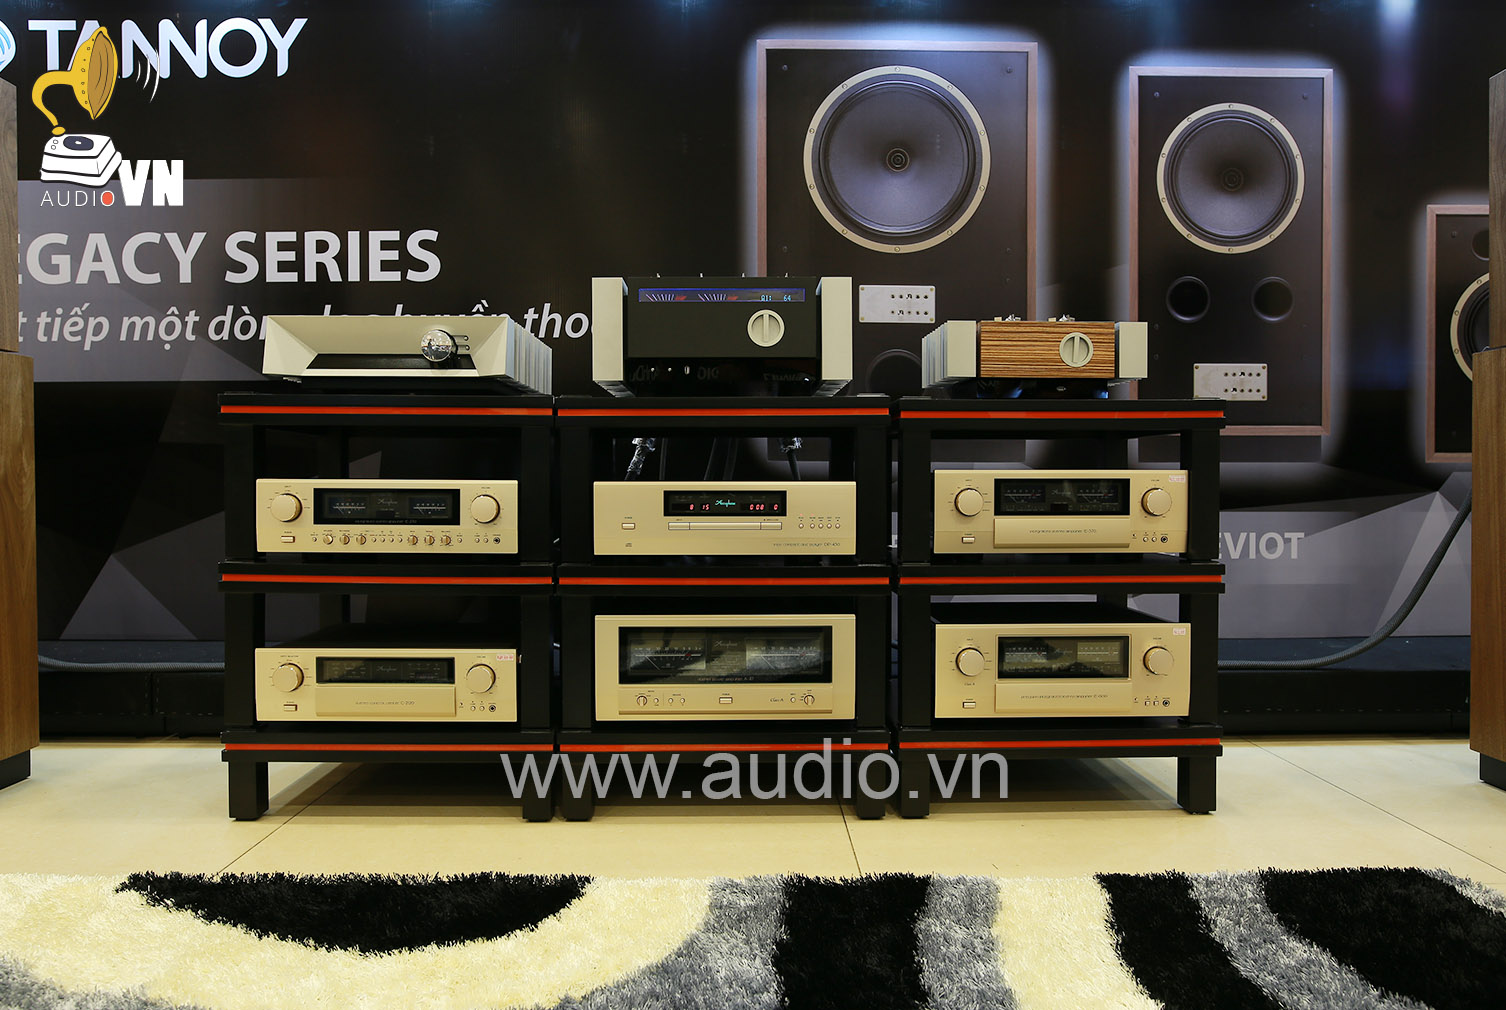 PreAmply Accuphase E-270